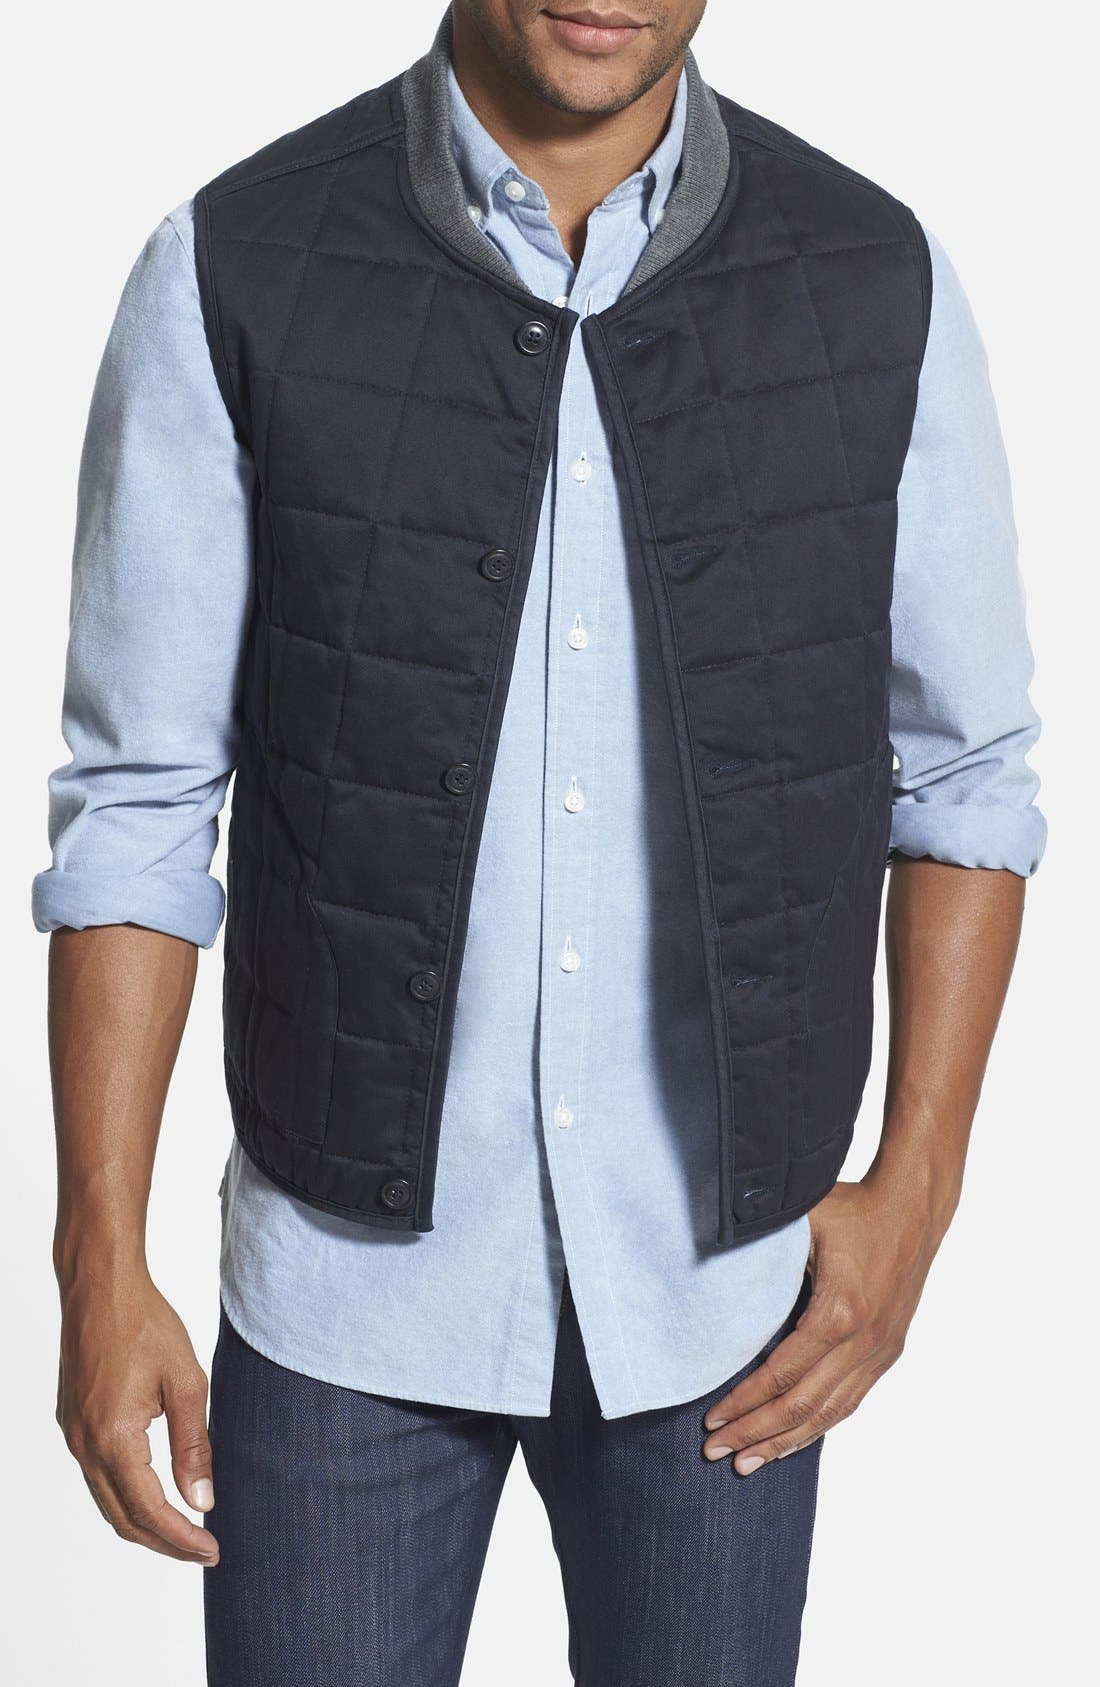 Main Image - Wallin & Bros. Trim Fit Quilted Vest